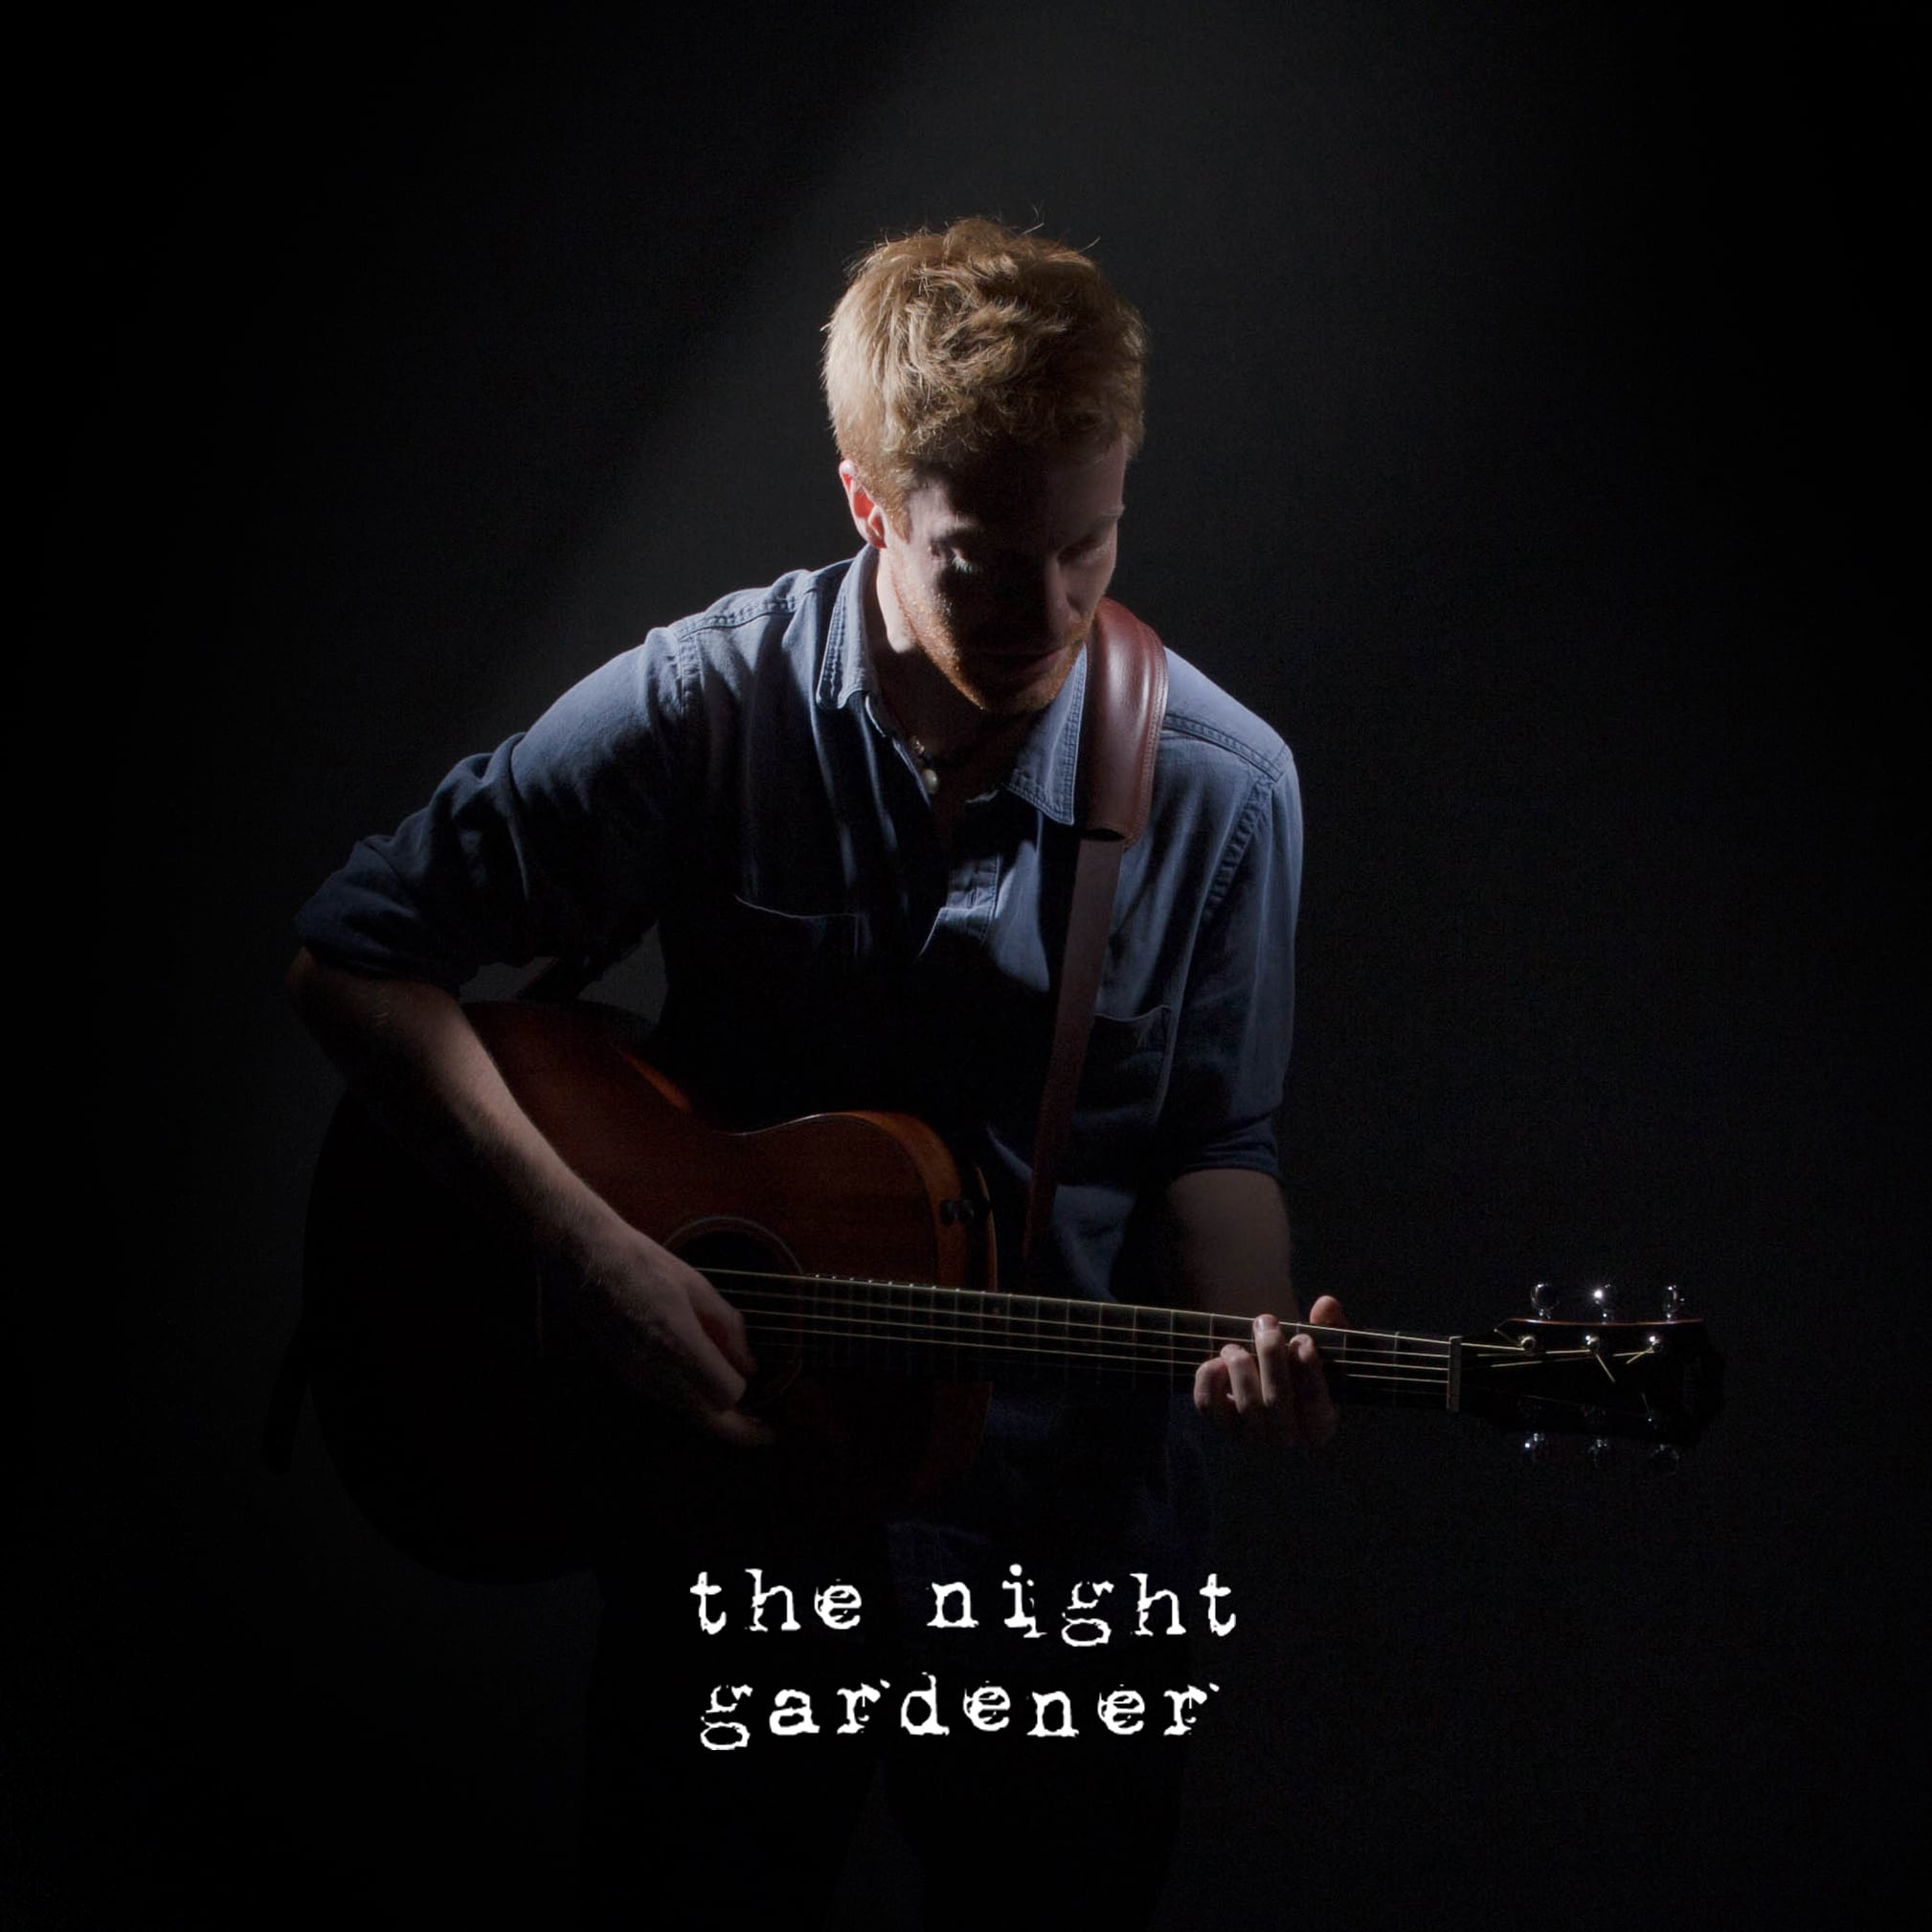 the night gardener beats for needs